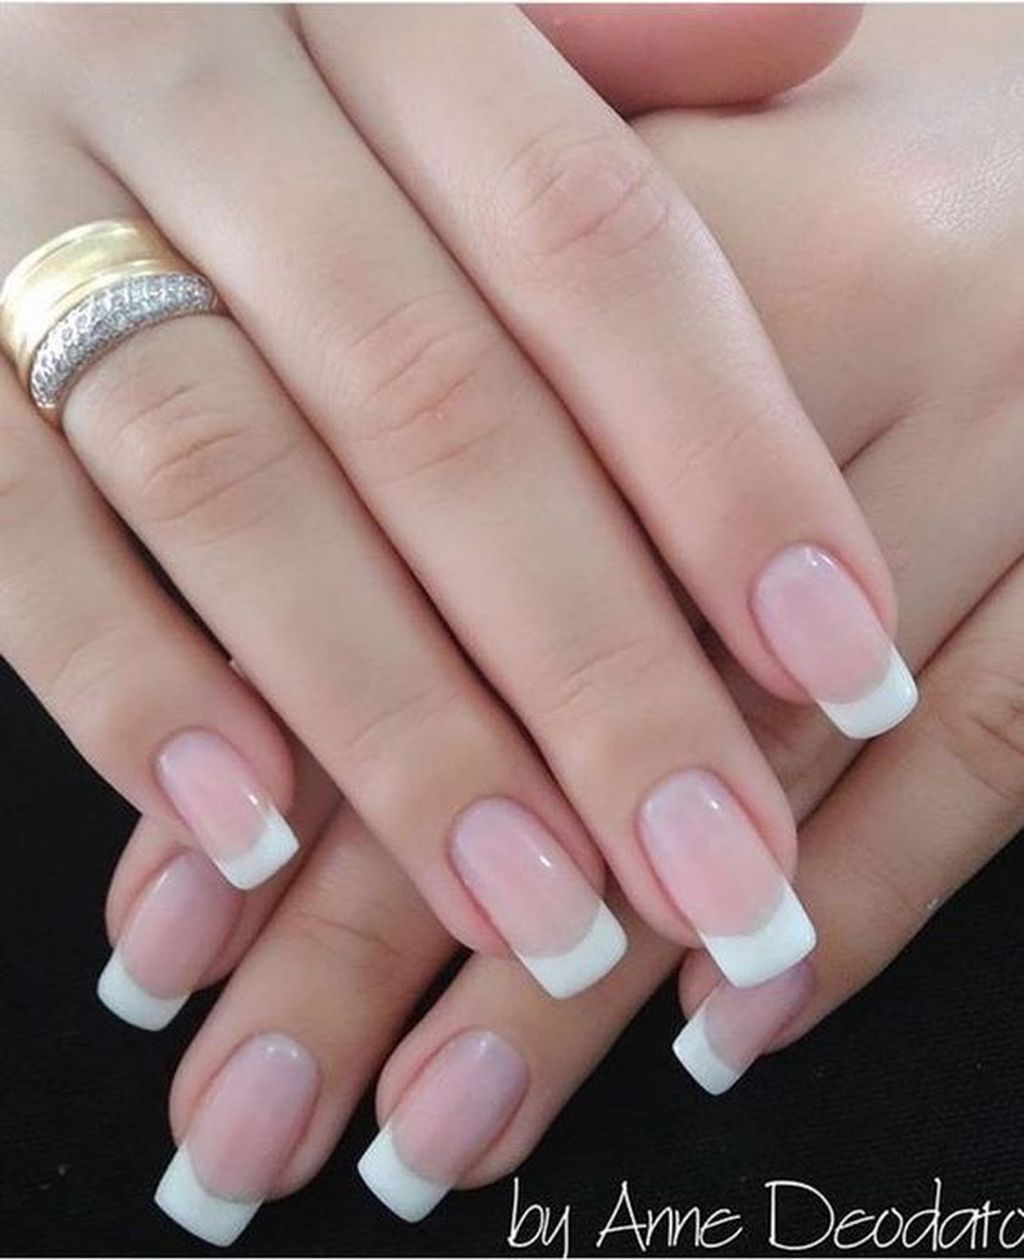 40 Cute French Manicure Designs Ideas To Try This Season French Manicure Acrylic Nails French Tip Nail Designs French Acrylic Nails